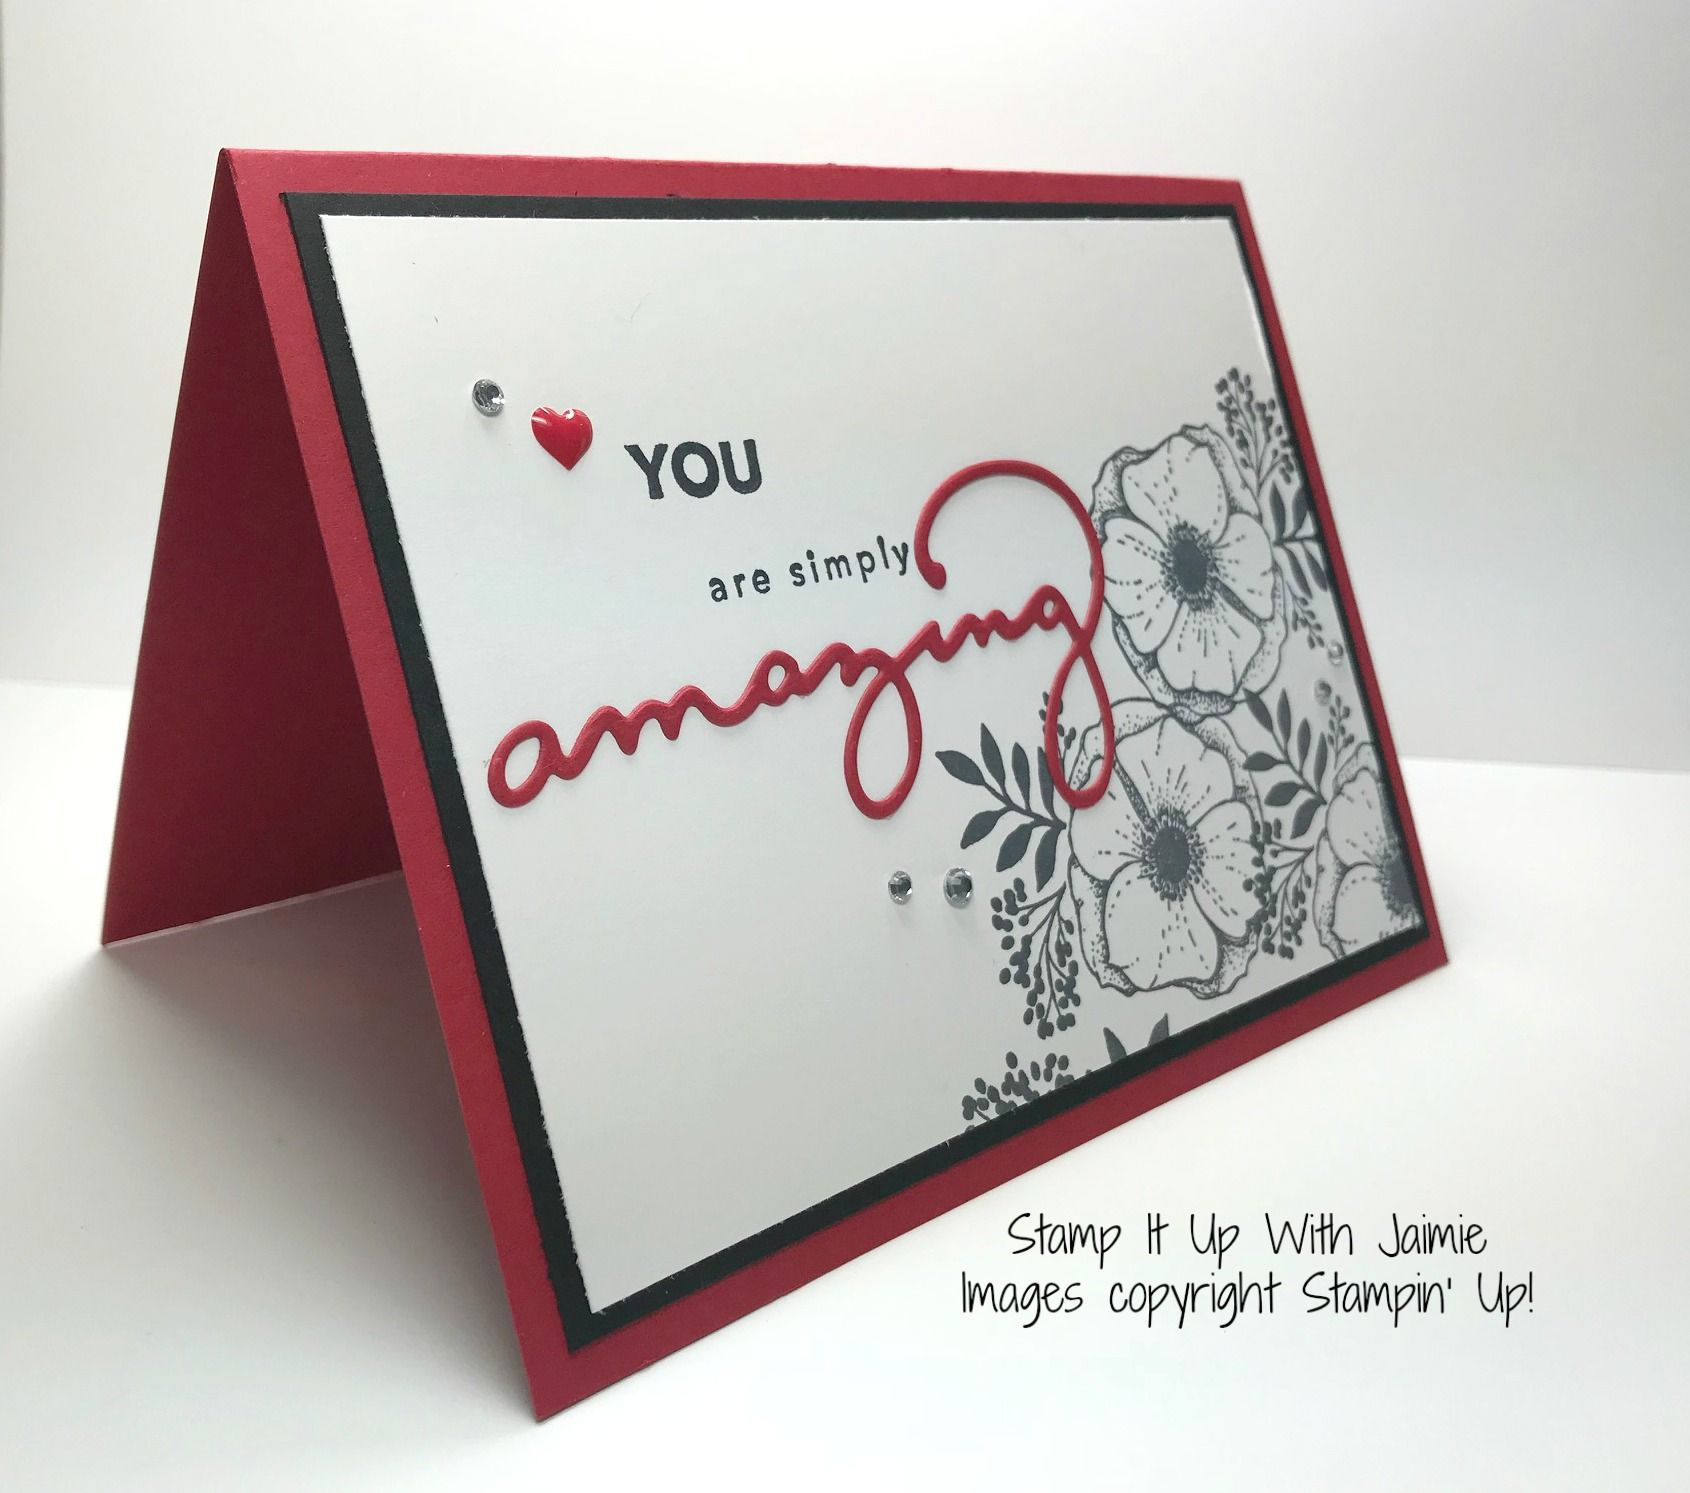 20 Amazing Christmas Card Ideas For 2016 Inspired Luv: Simple Birthday Cards, Birthday